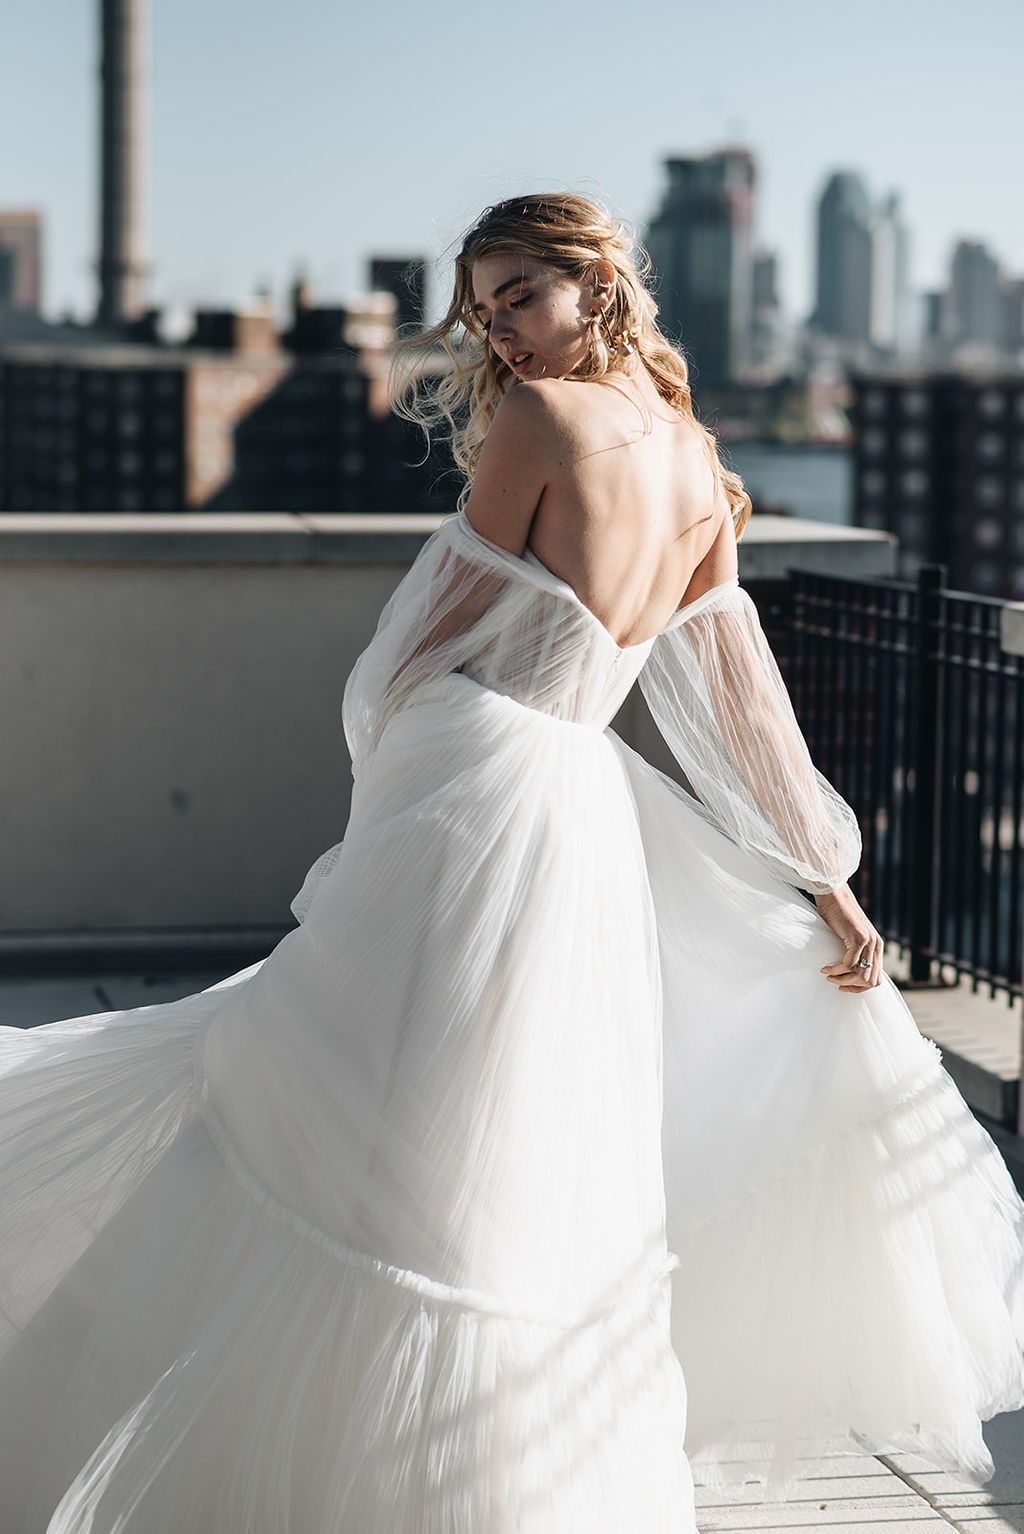 Alena Leena Bridal featured in NYC for the One Fine Day